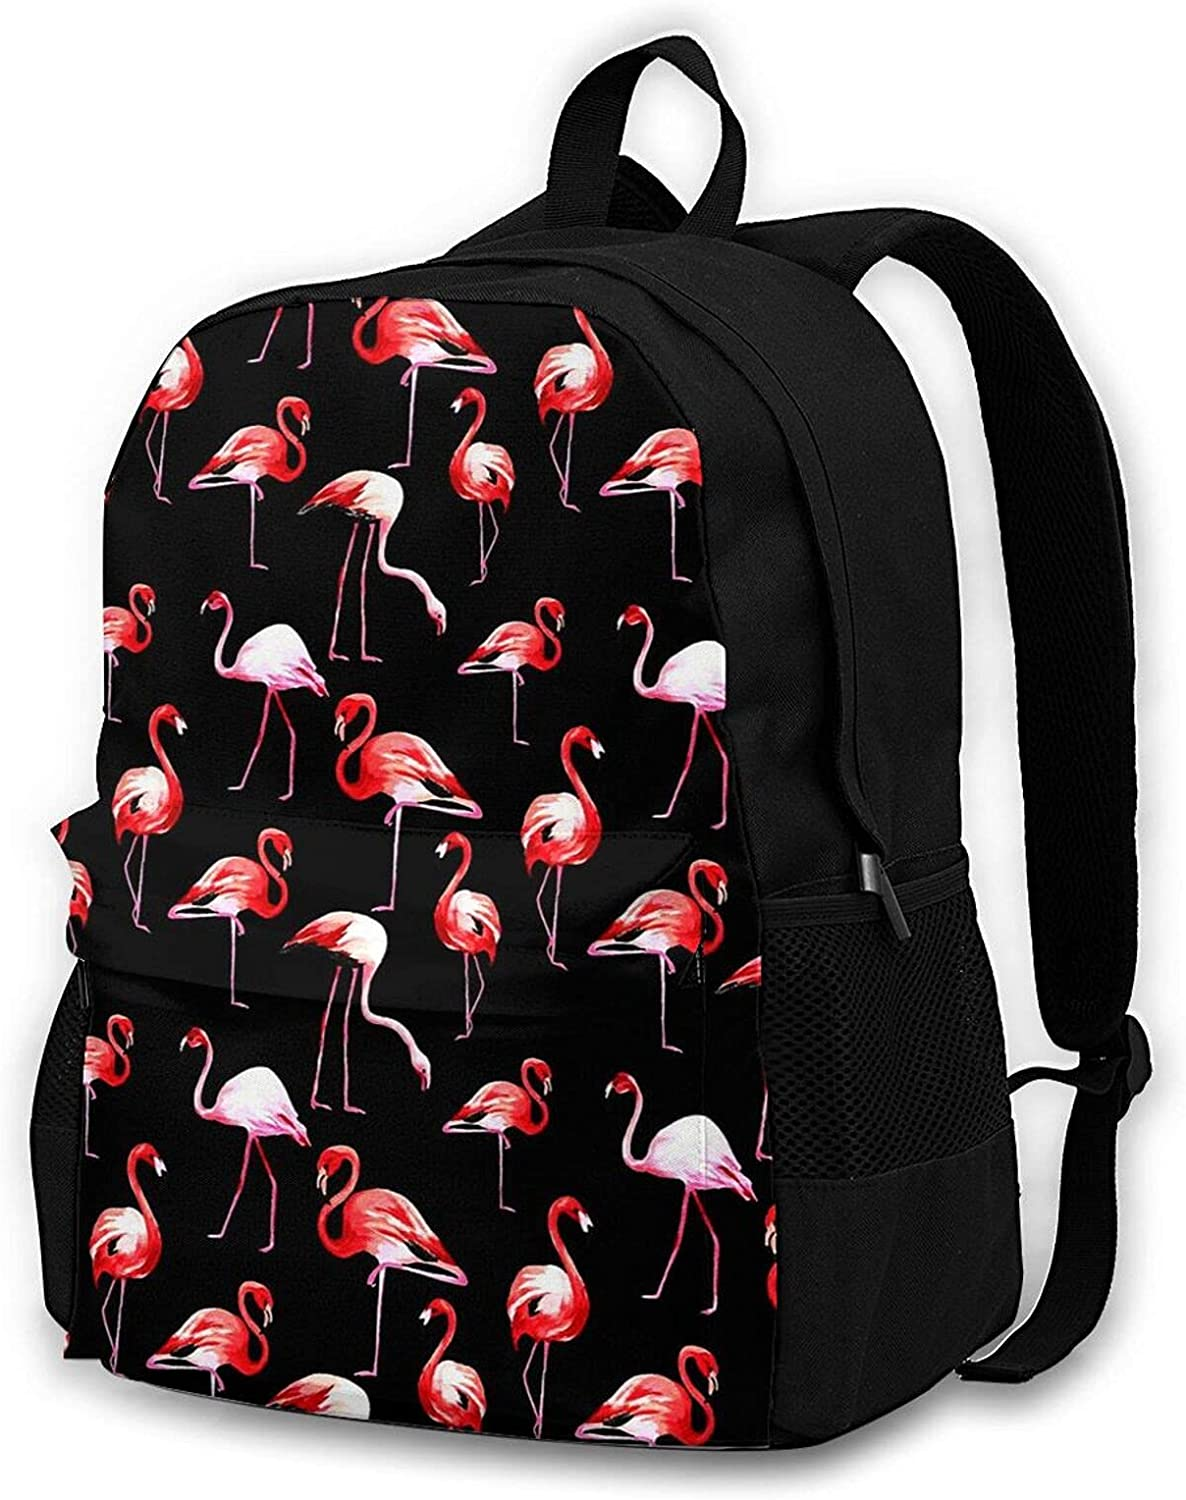 Flamingo-black Travel Laptop Backpack for Men Women College School Computer Bookbag with Business Anti Theft Water Resistant